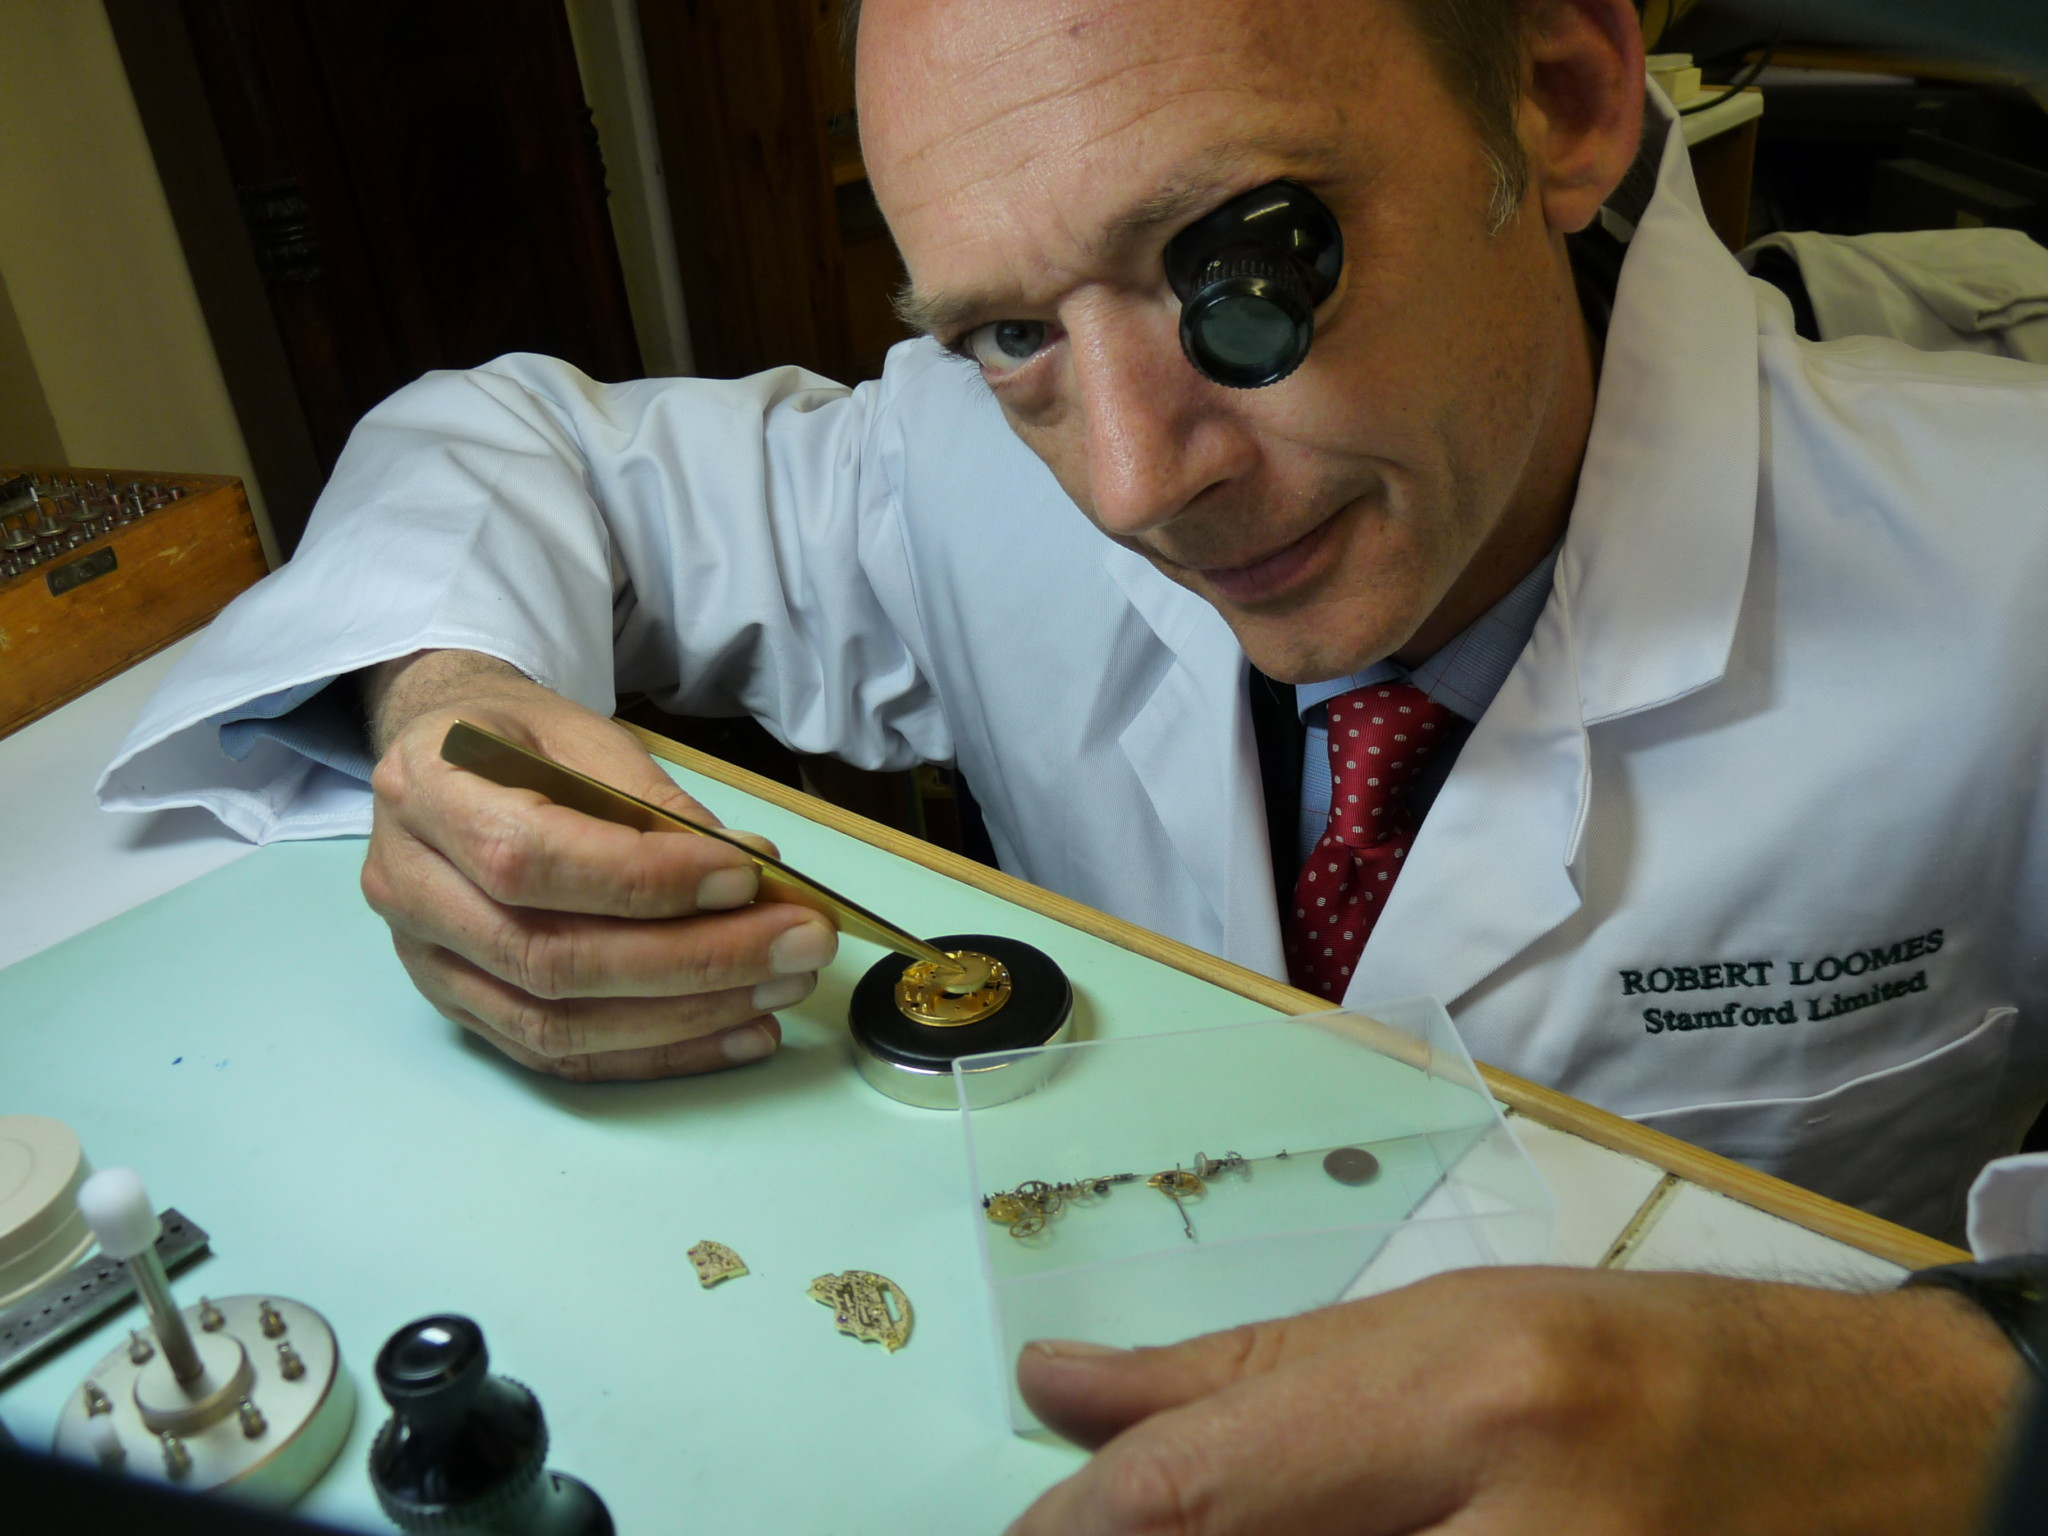 Robert watchmaking Robin